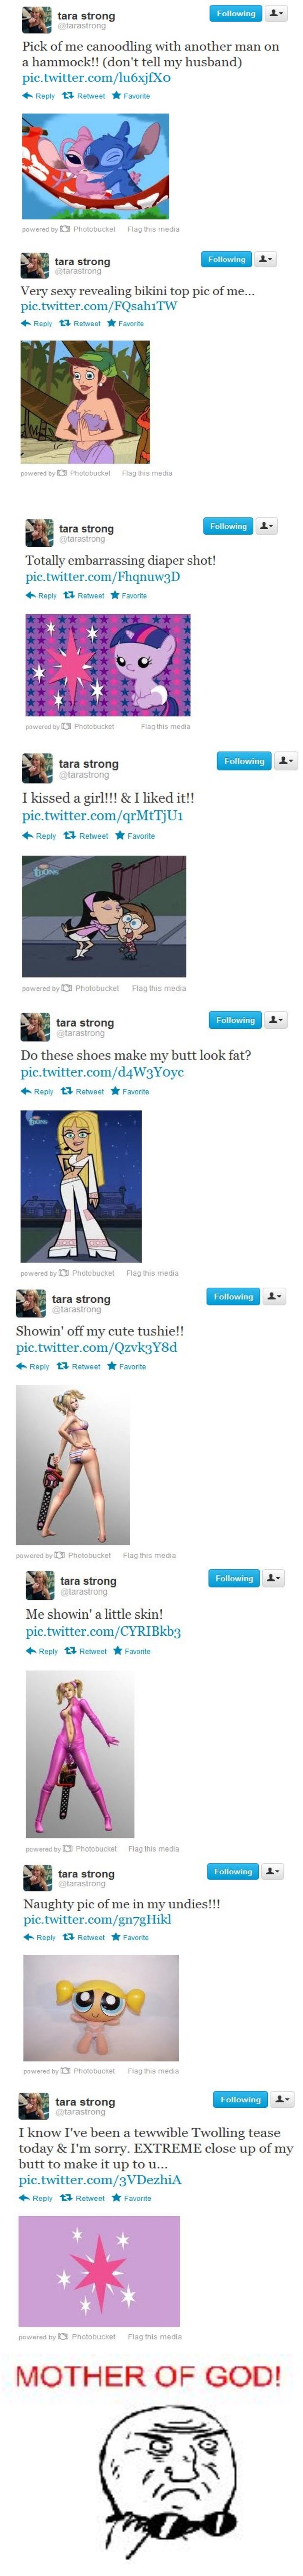 Tara Strong Troll Lvl 100. A compilation of her tweets not very used to making these super tall pictures, so im not sure how it will look on here. 1: tarastrong